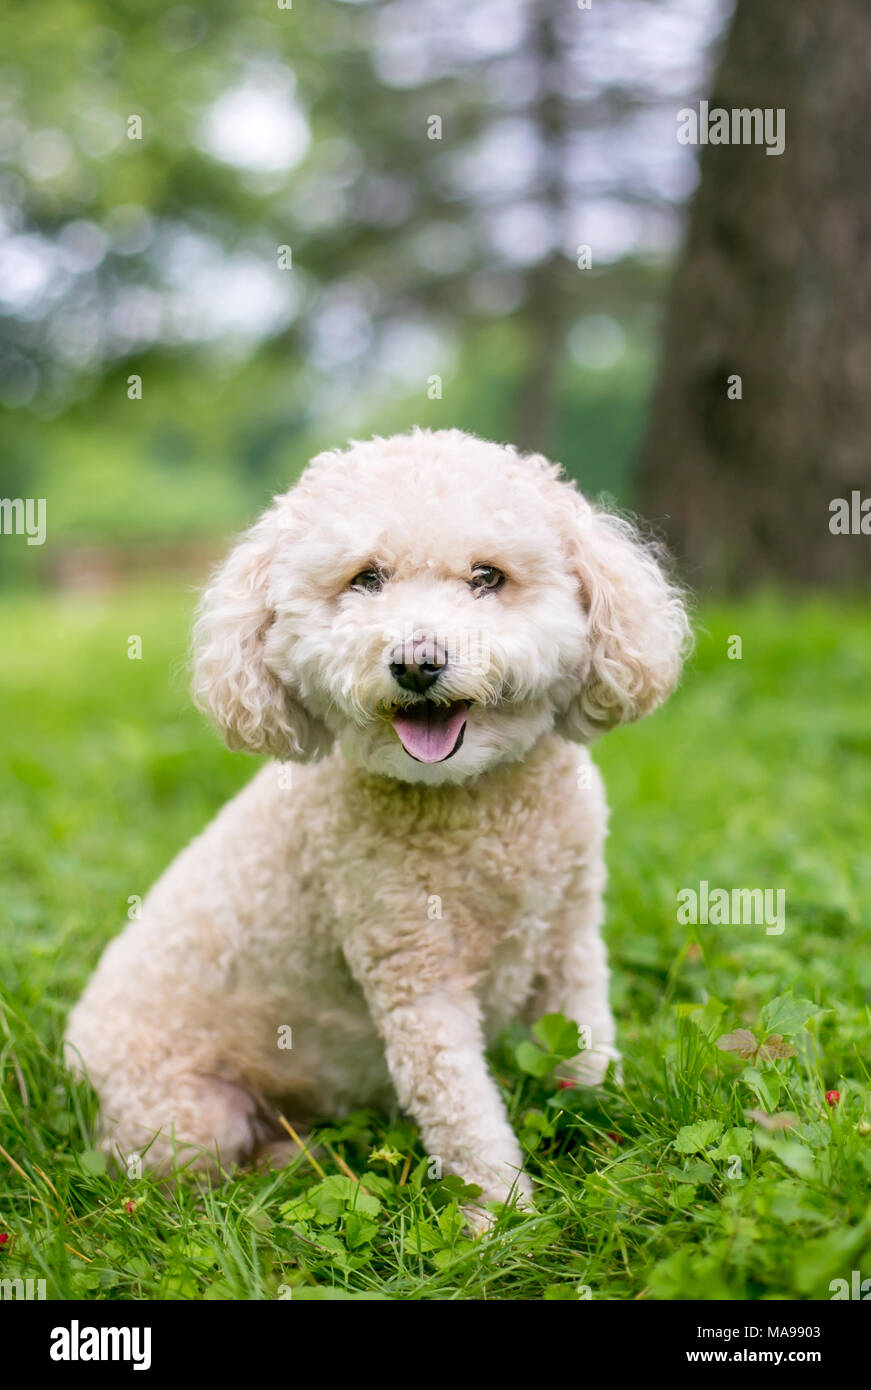 A cute Miniature Poodle dog outdoors - Stock Image